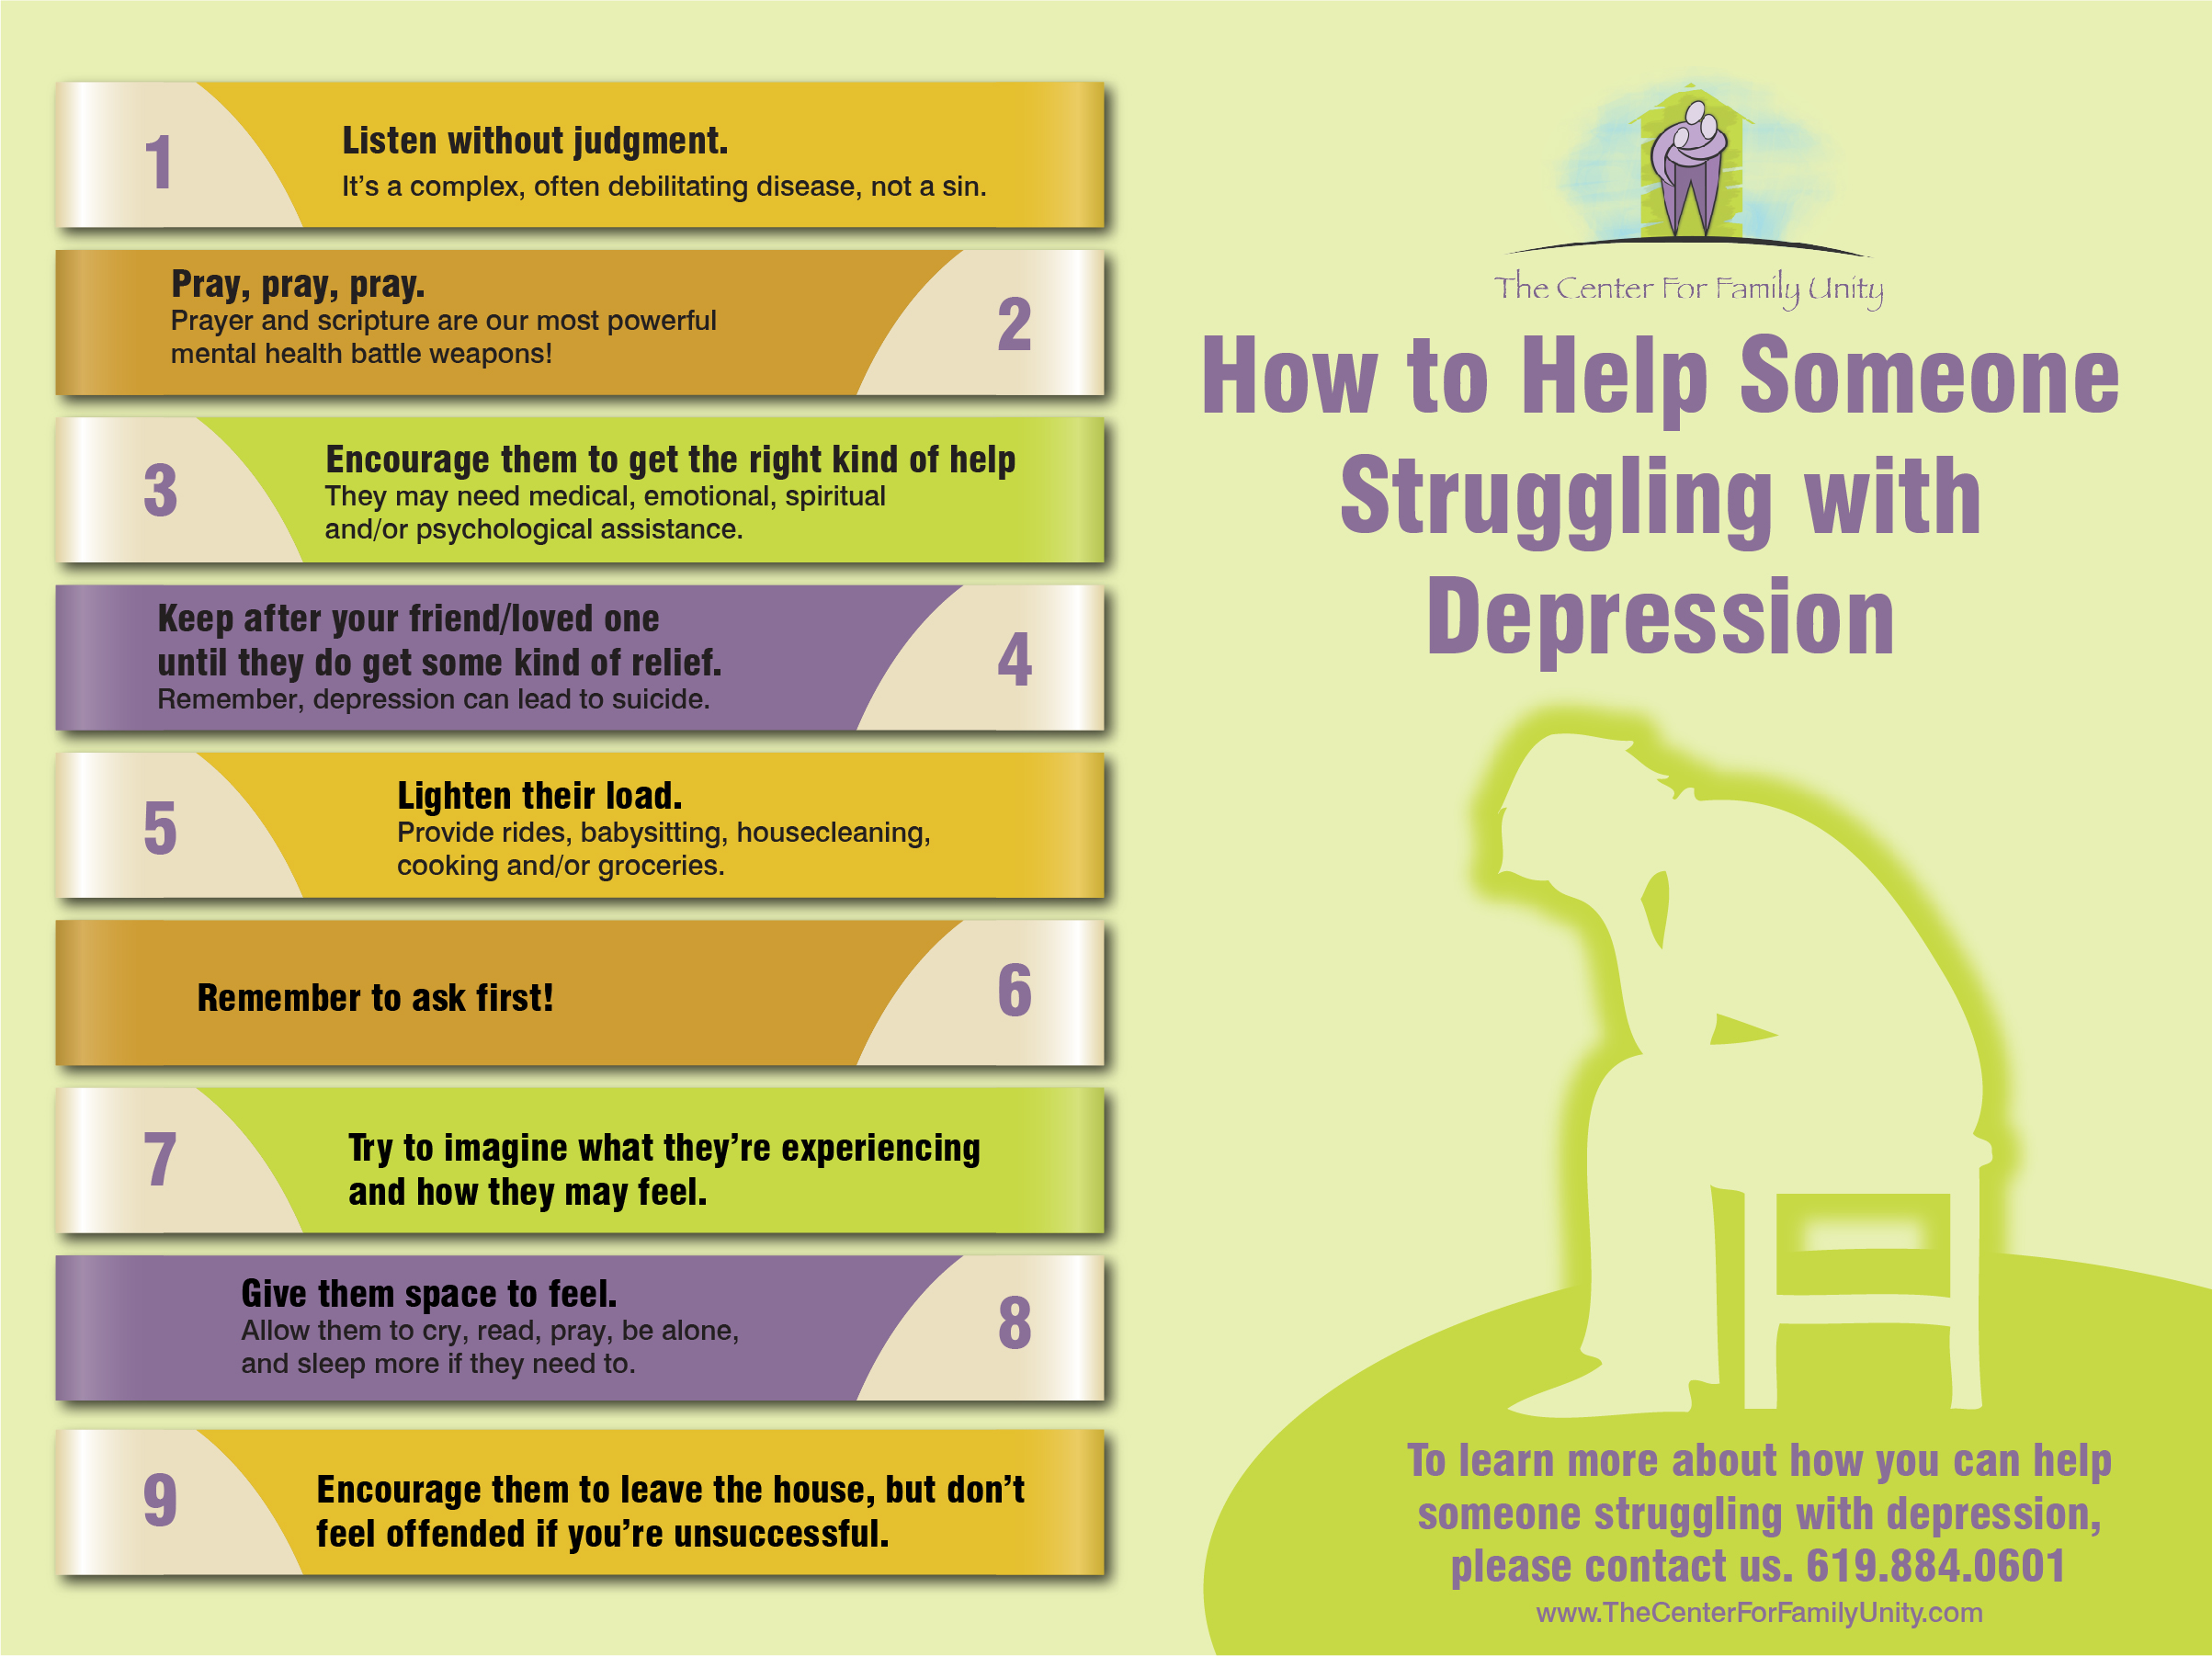 how to help someone struggling with depression | visual.ly